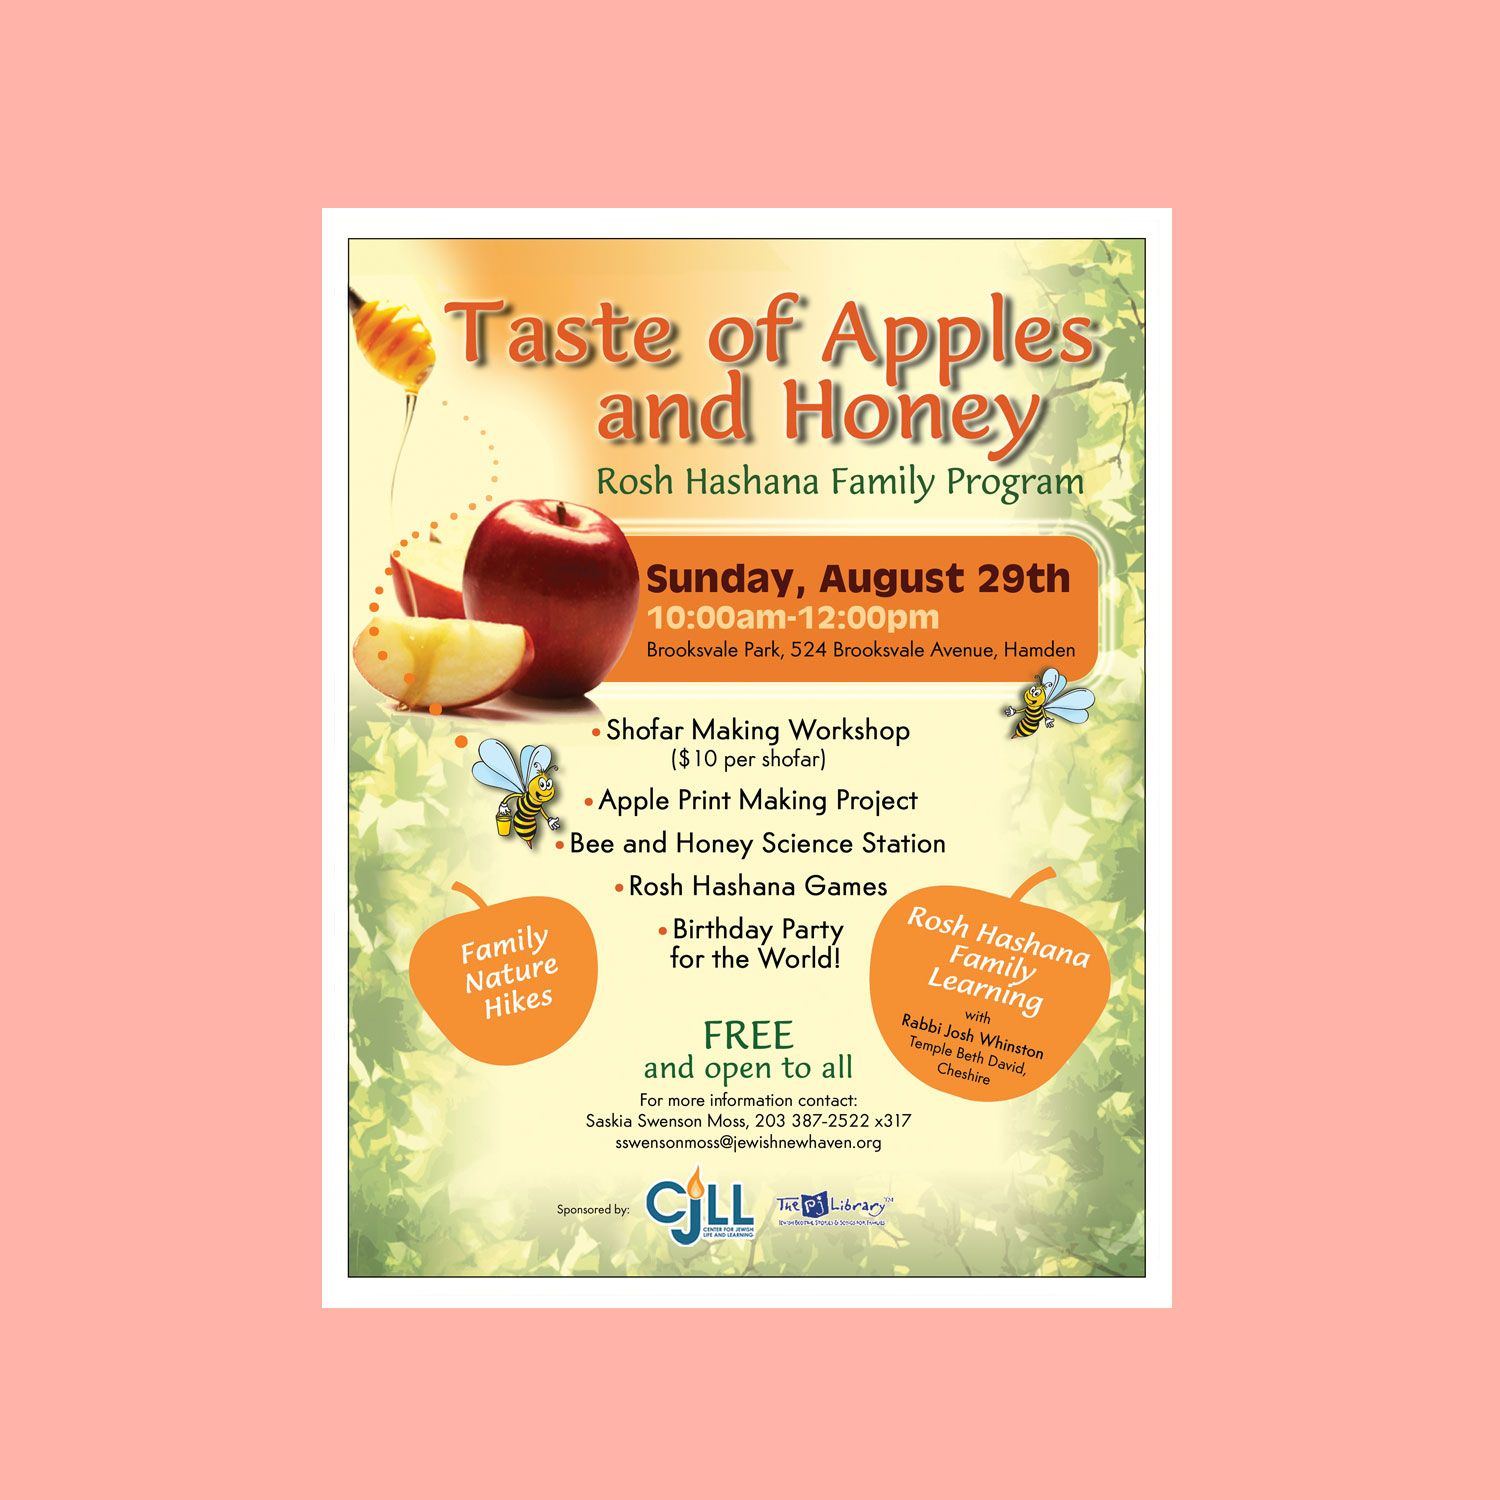 Party memorable taste of apples and honey rosh hashanah family memorable taste of apples and honey rosh hashanah family program invitation template rosh hashanah online card and invitation templates to check out kristyandbryce Choice Image